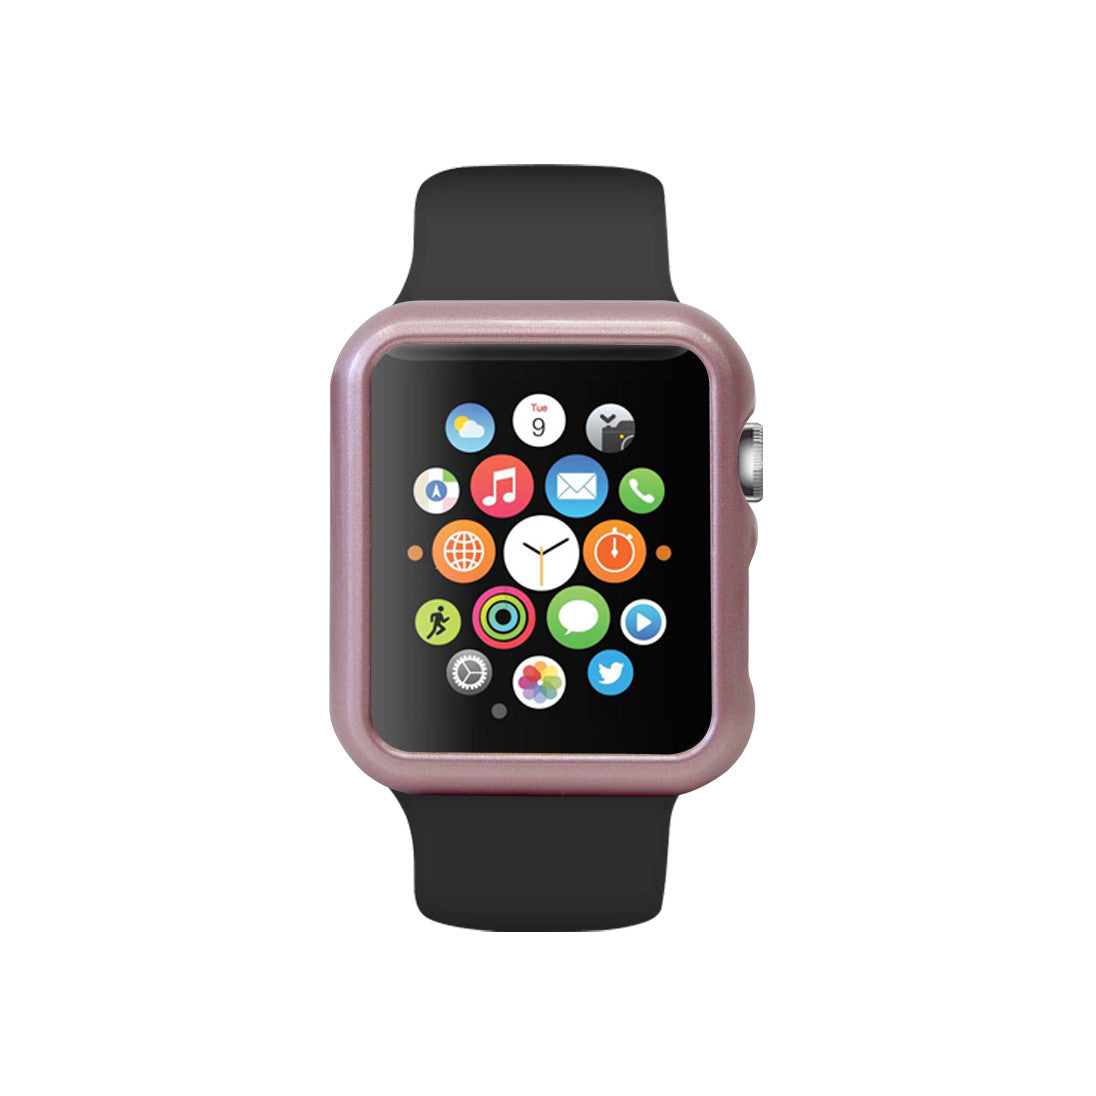 Https Daily Products Custom Hardcase Midnight Dots Iphone 4 5 5c 6 Plus 7 Case 150728 Apple Watch Cr2v1438320311